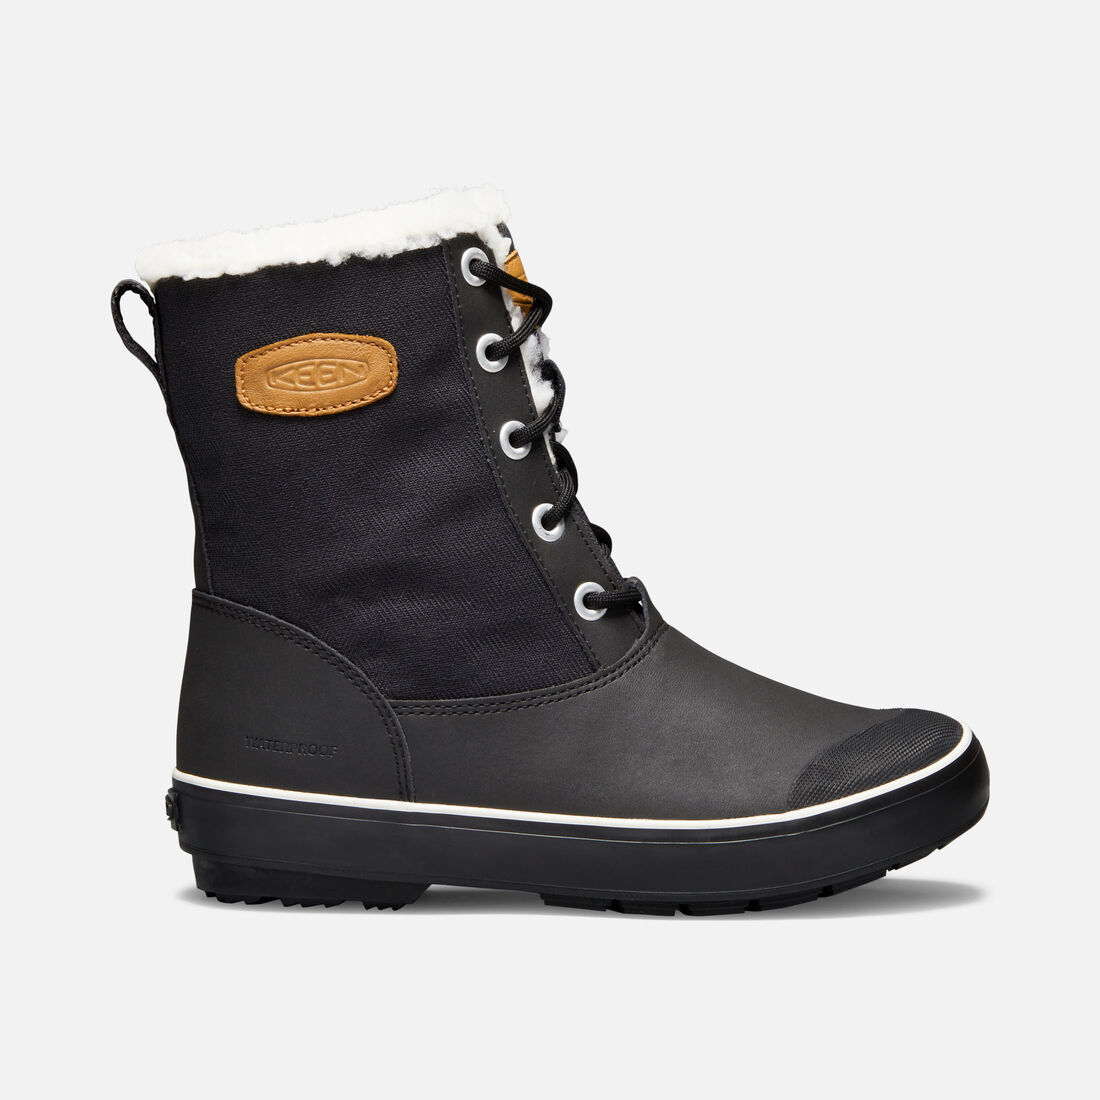 Women's Elsa L Boot in Black - large view.